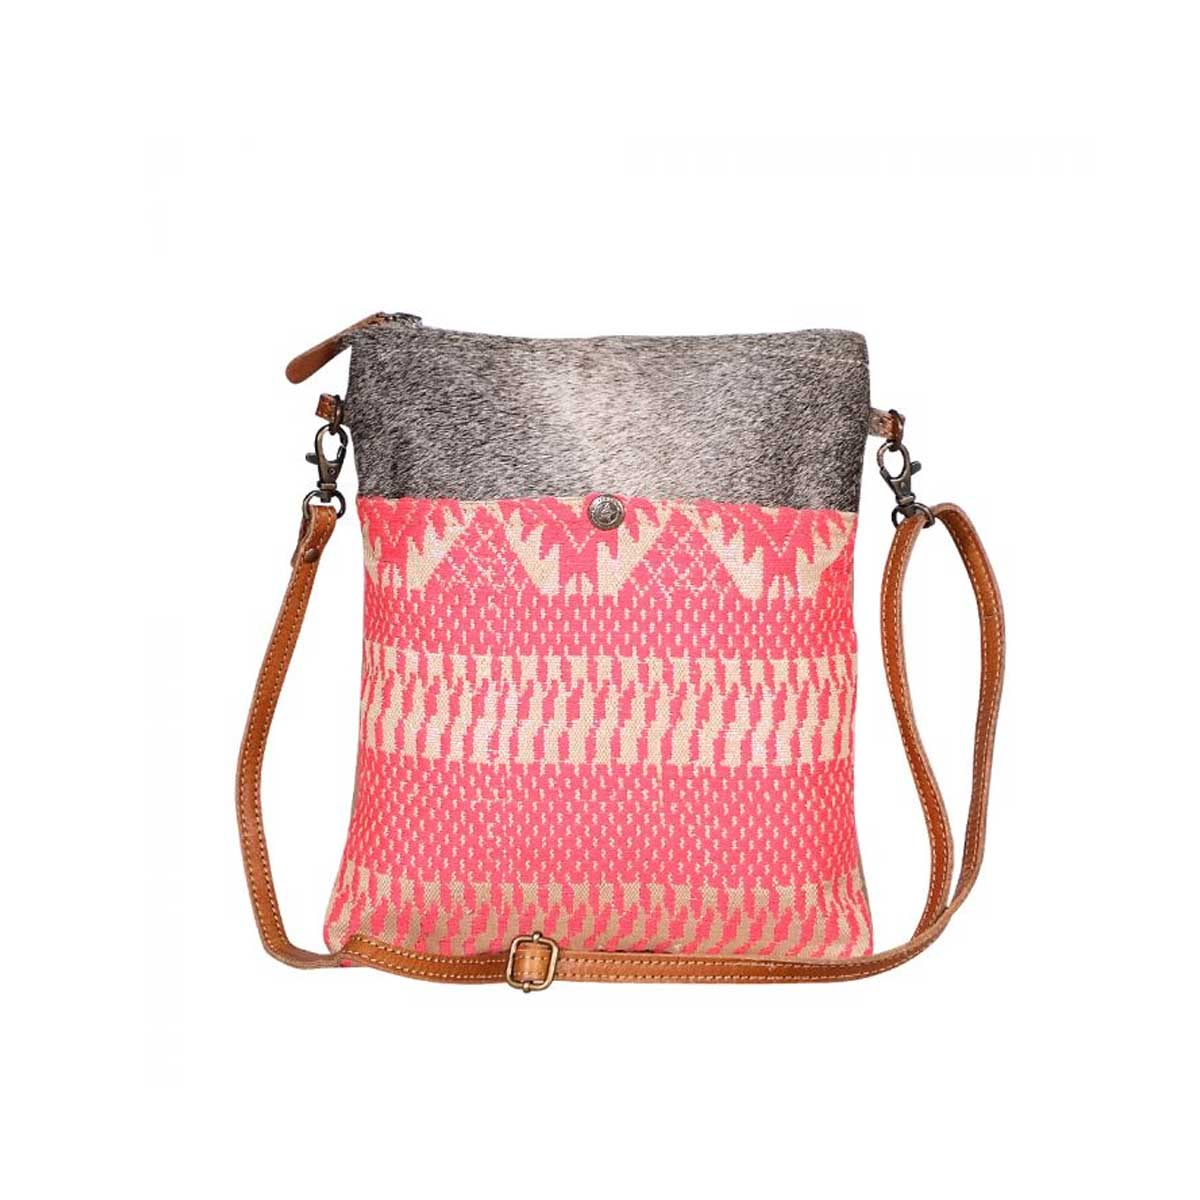 Myra Bag Pink Petals Small And Crossbody Bag Lazy J Ranch Wear All payments cards accepted here. lazy j ranch wear